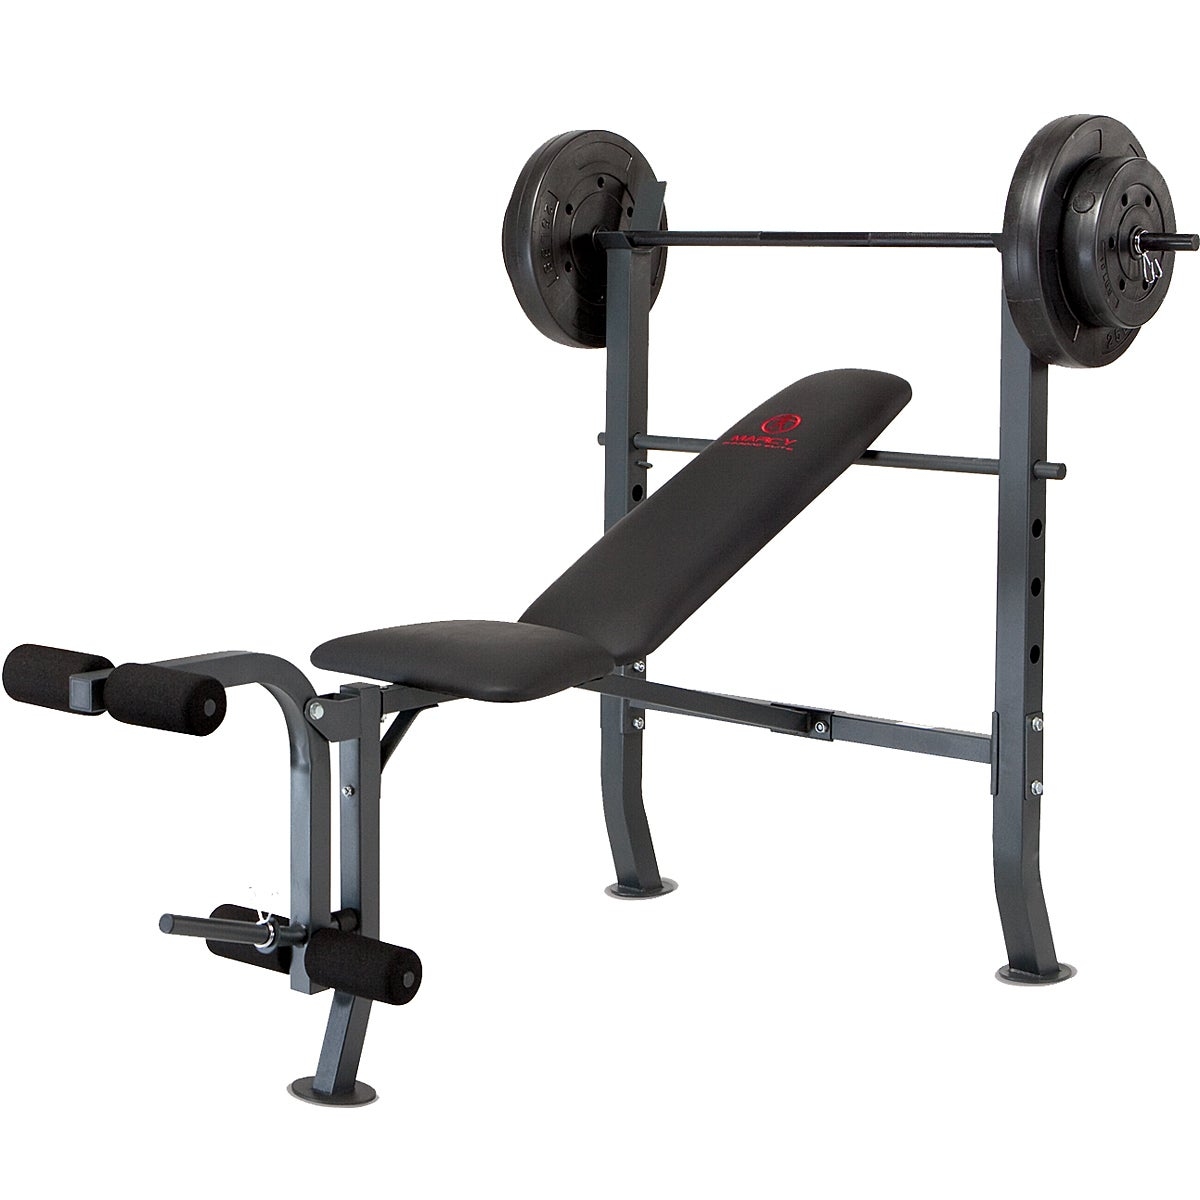 Marcy Olympic With 80 Pound Weight Set Workout Bench Overstock Shopping The Best Prices On